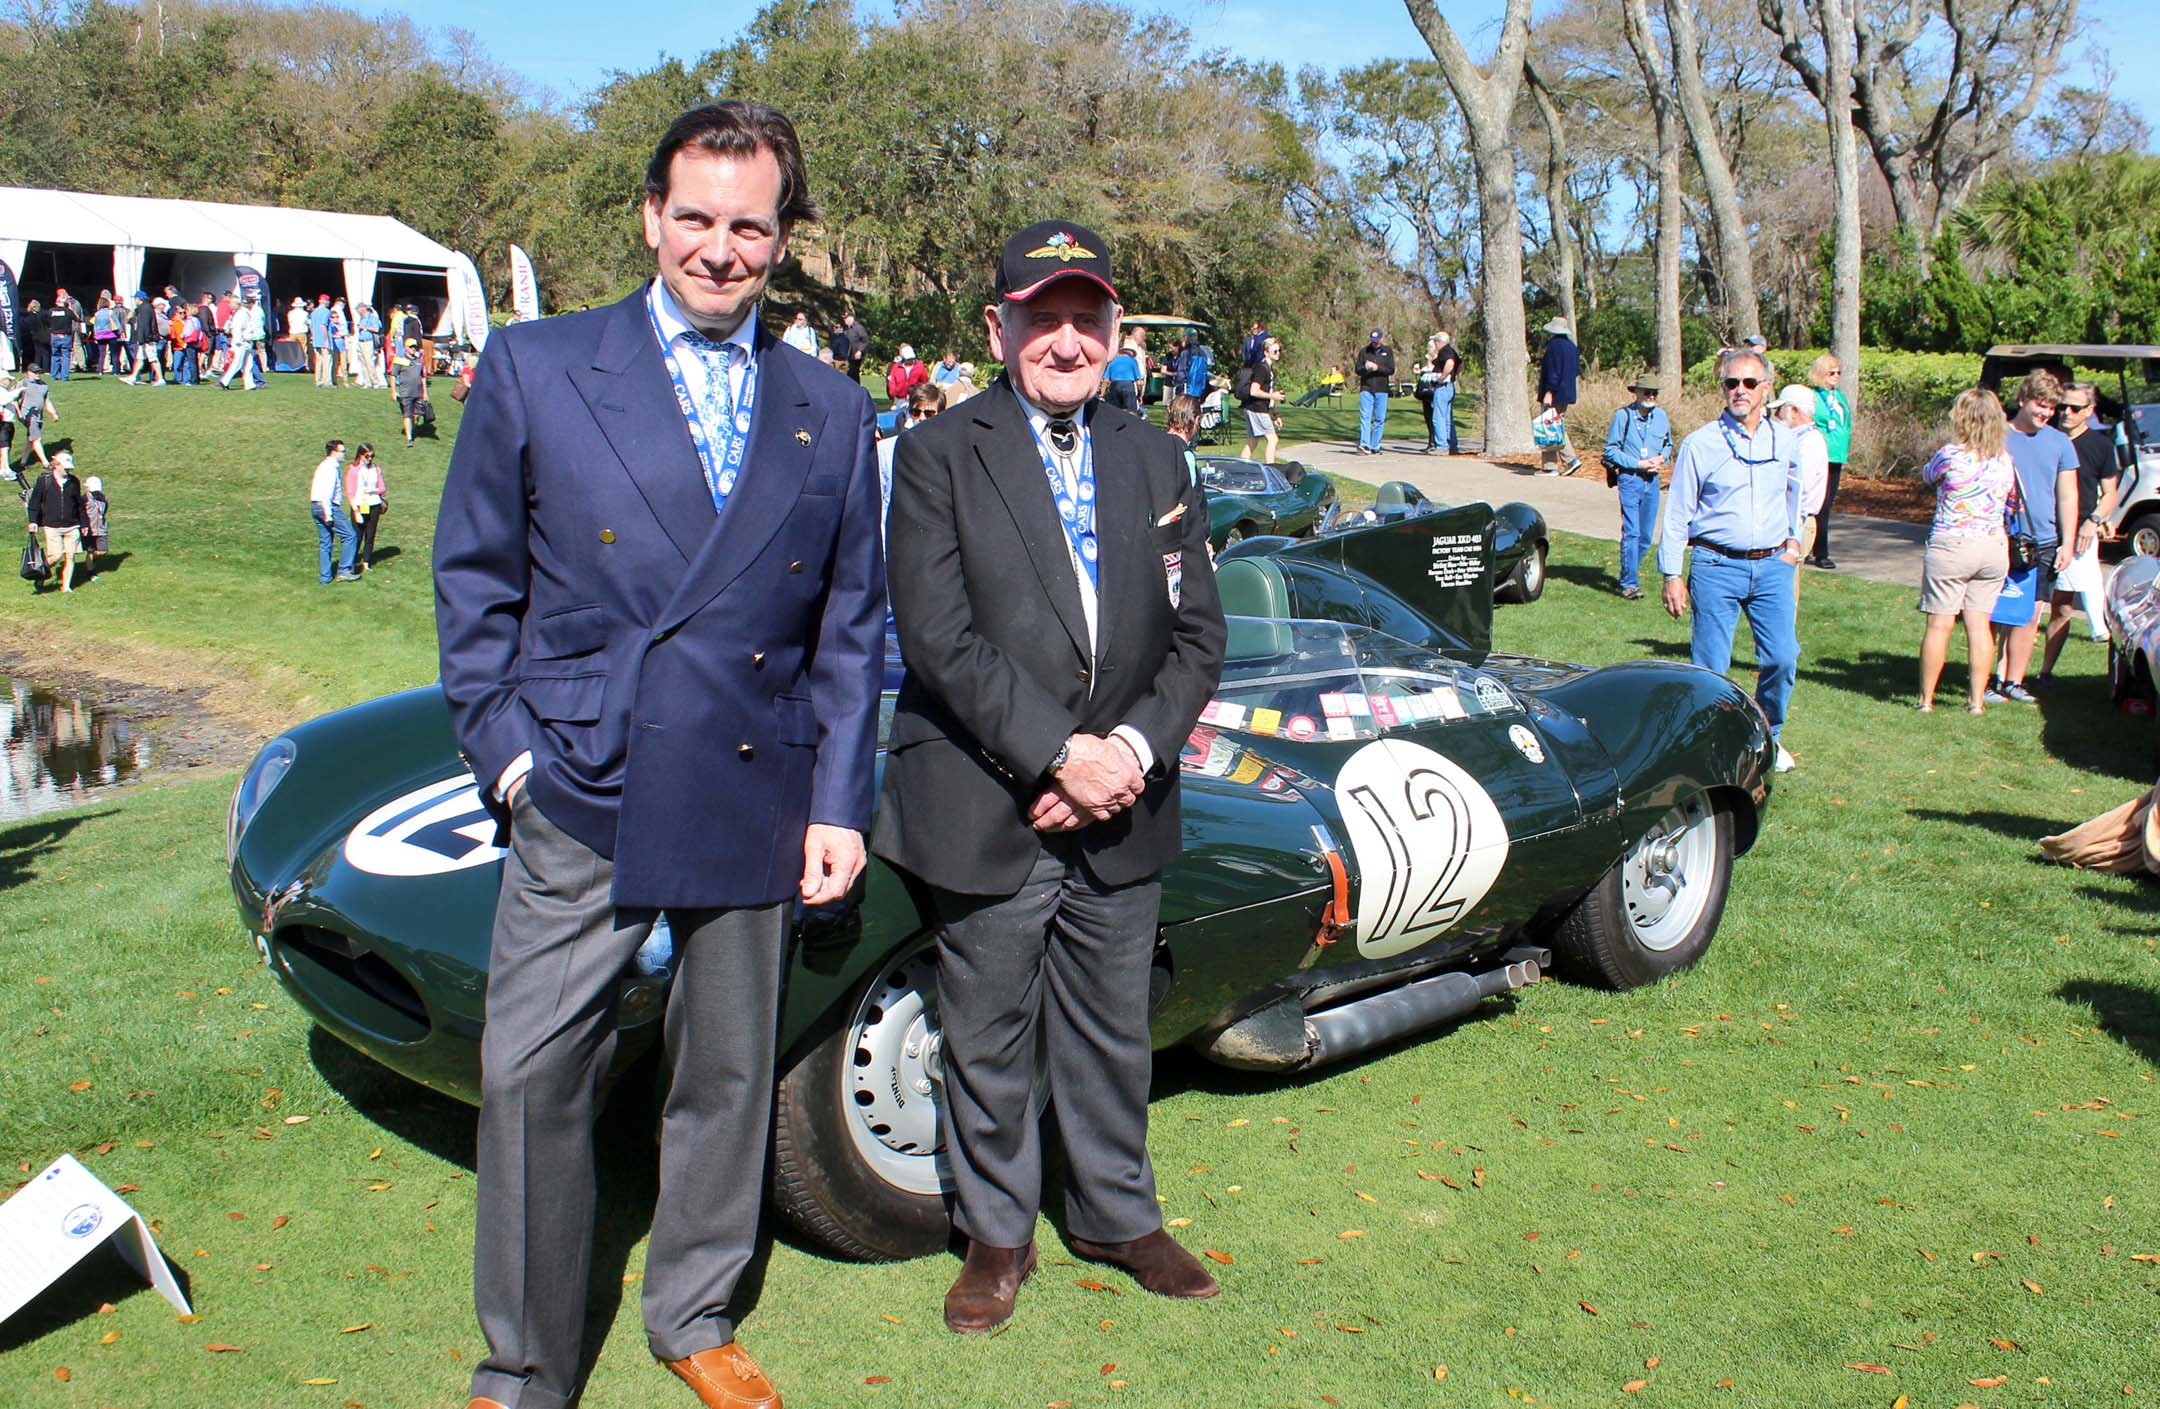 Michael Quinn (grandson of Jaguar founder Sir William Lyons) and Norman Dewis, Jaguar development driver in front of 1955 D-Type